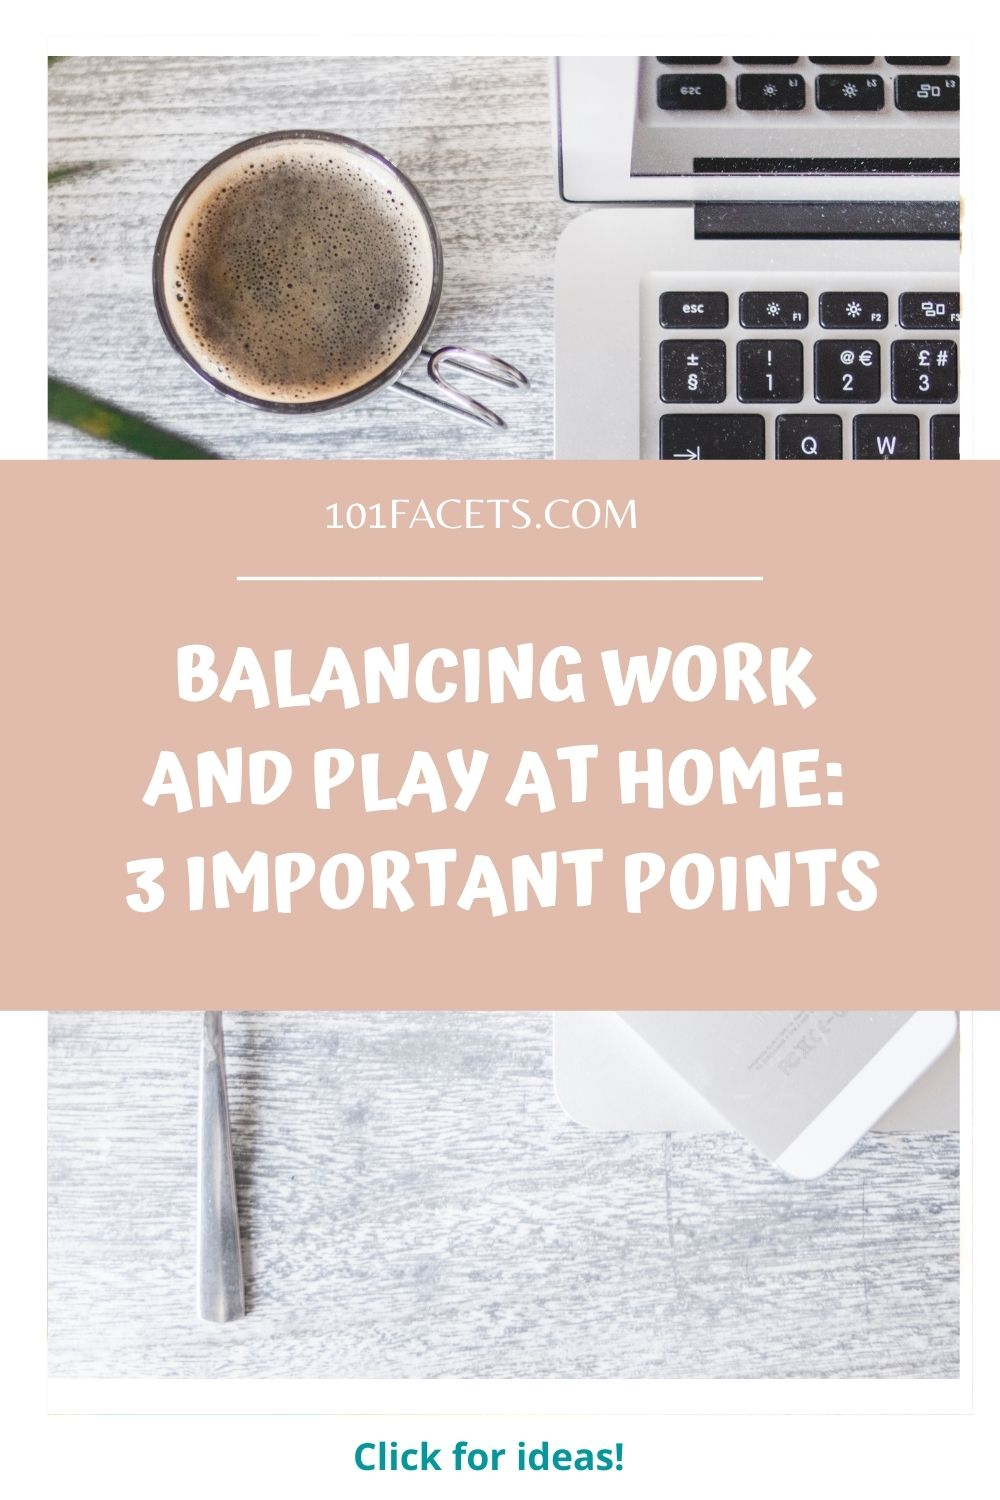 Balancing Work and Play at Home: 3 Important Points